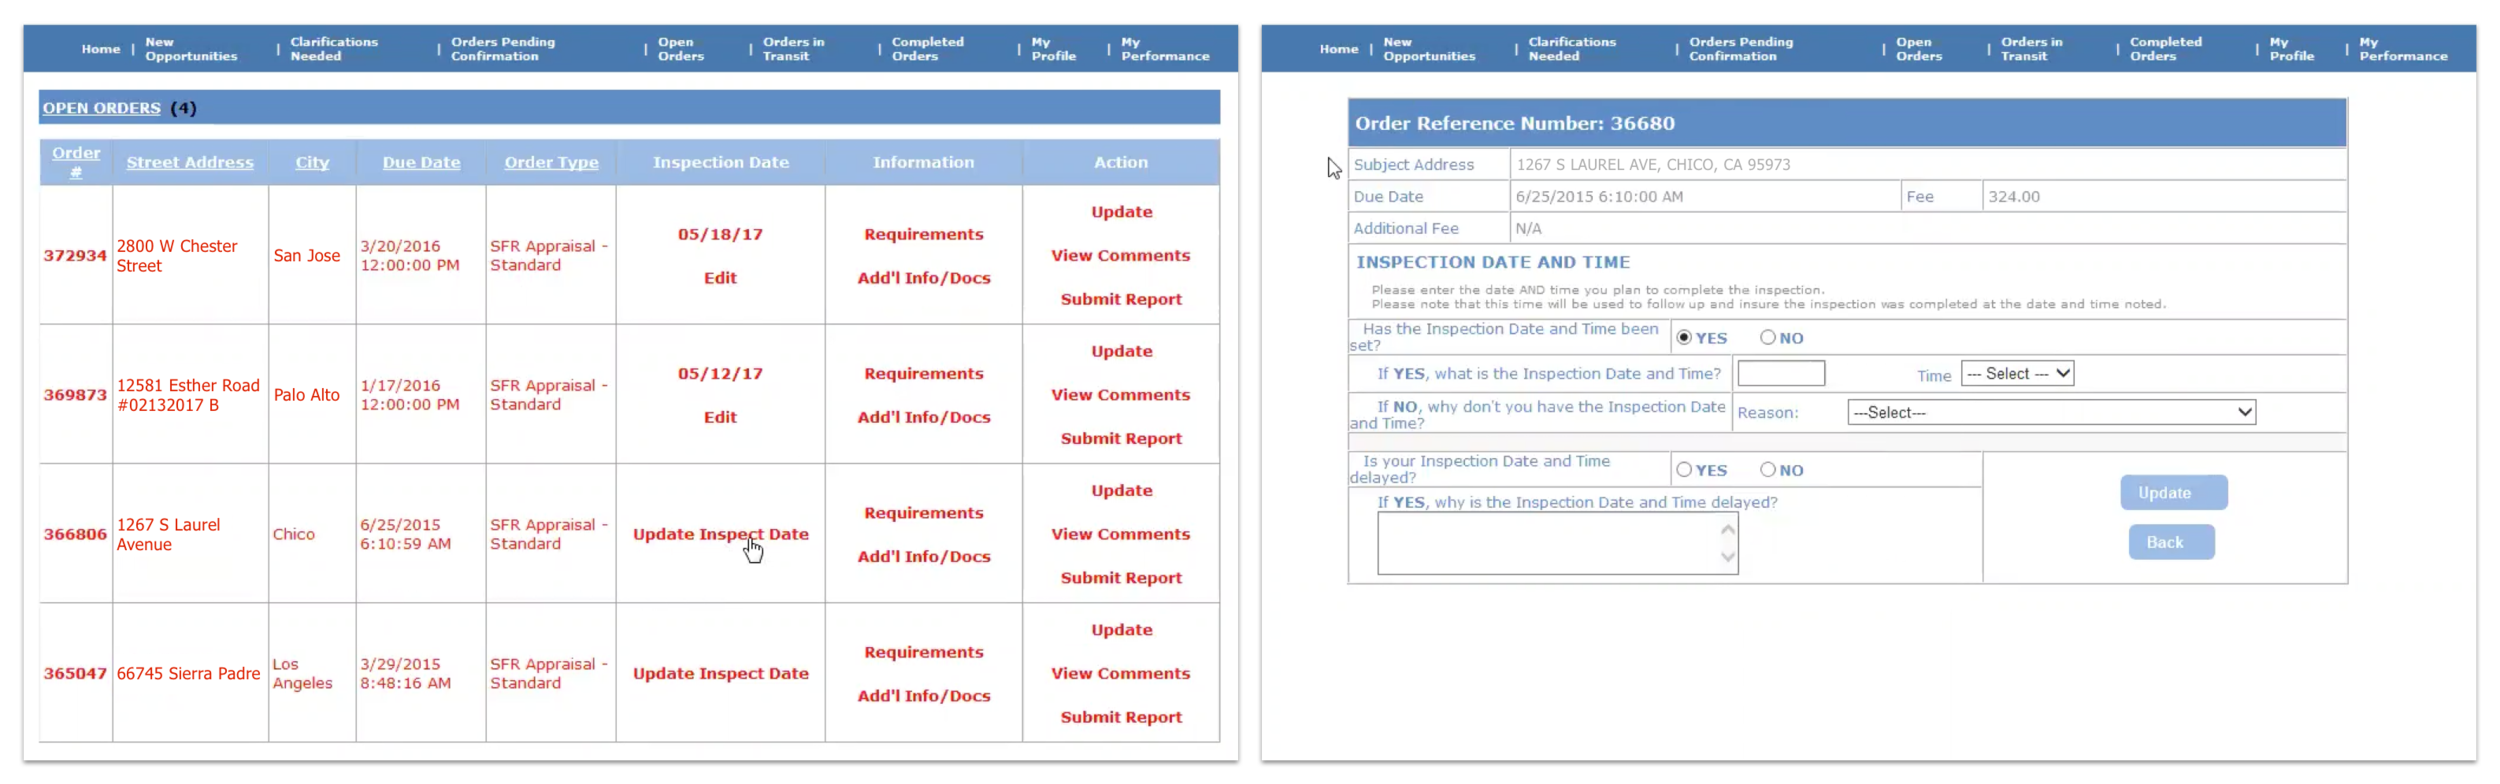 Screenshots from the web-based source application shows cumbersome UI.